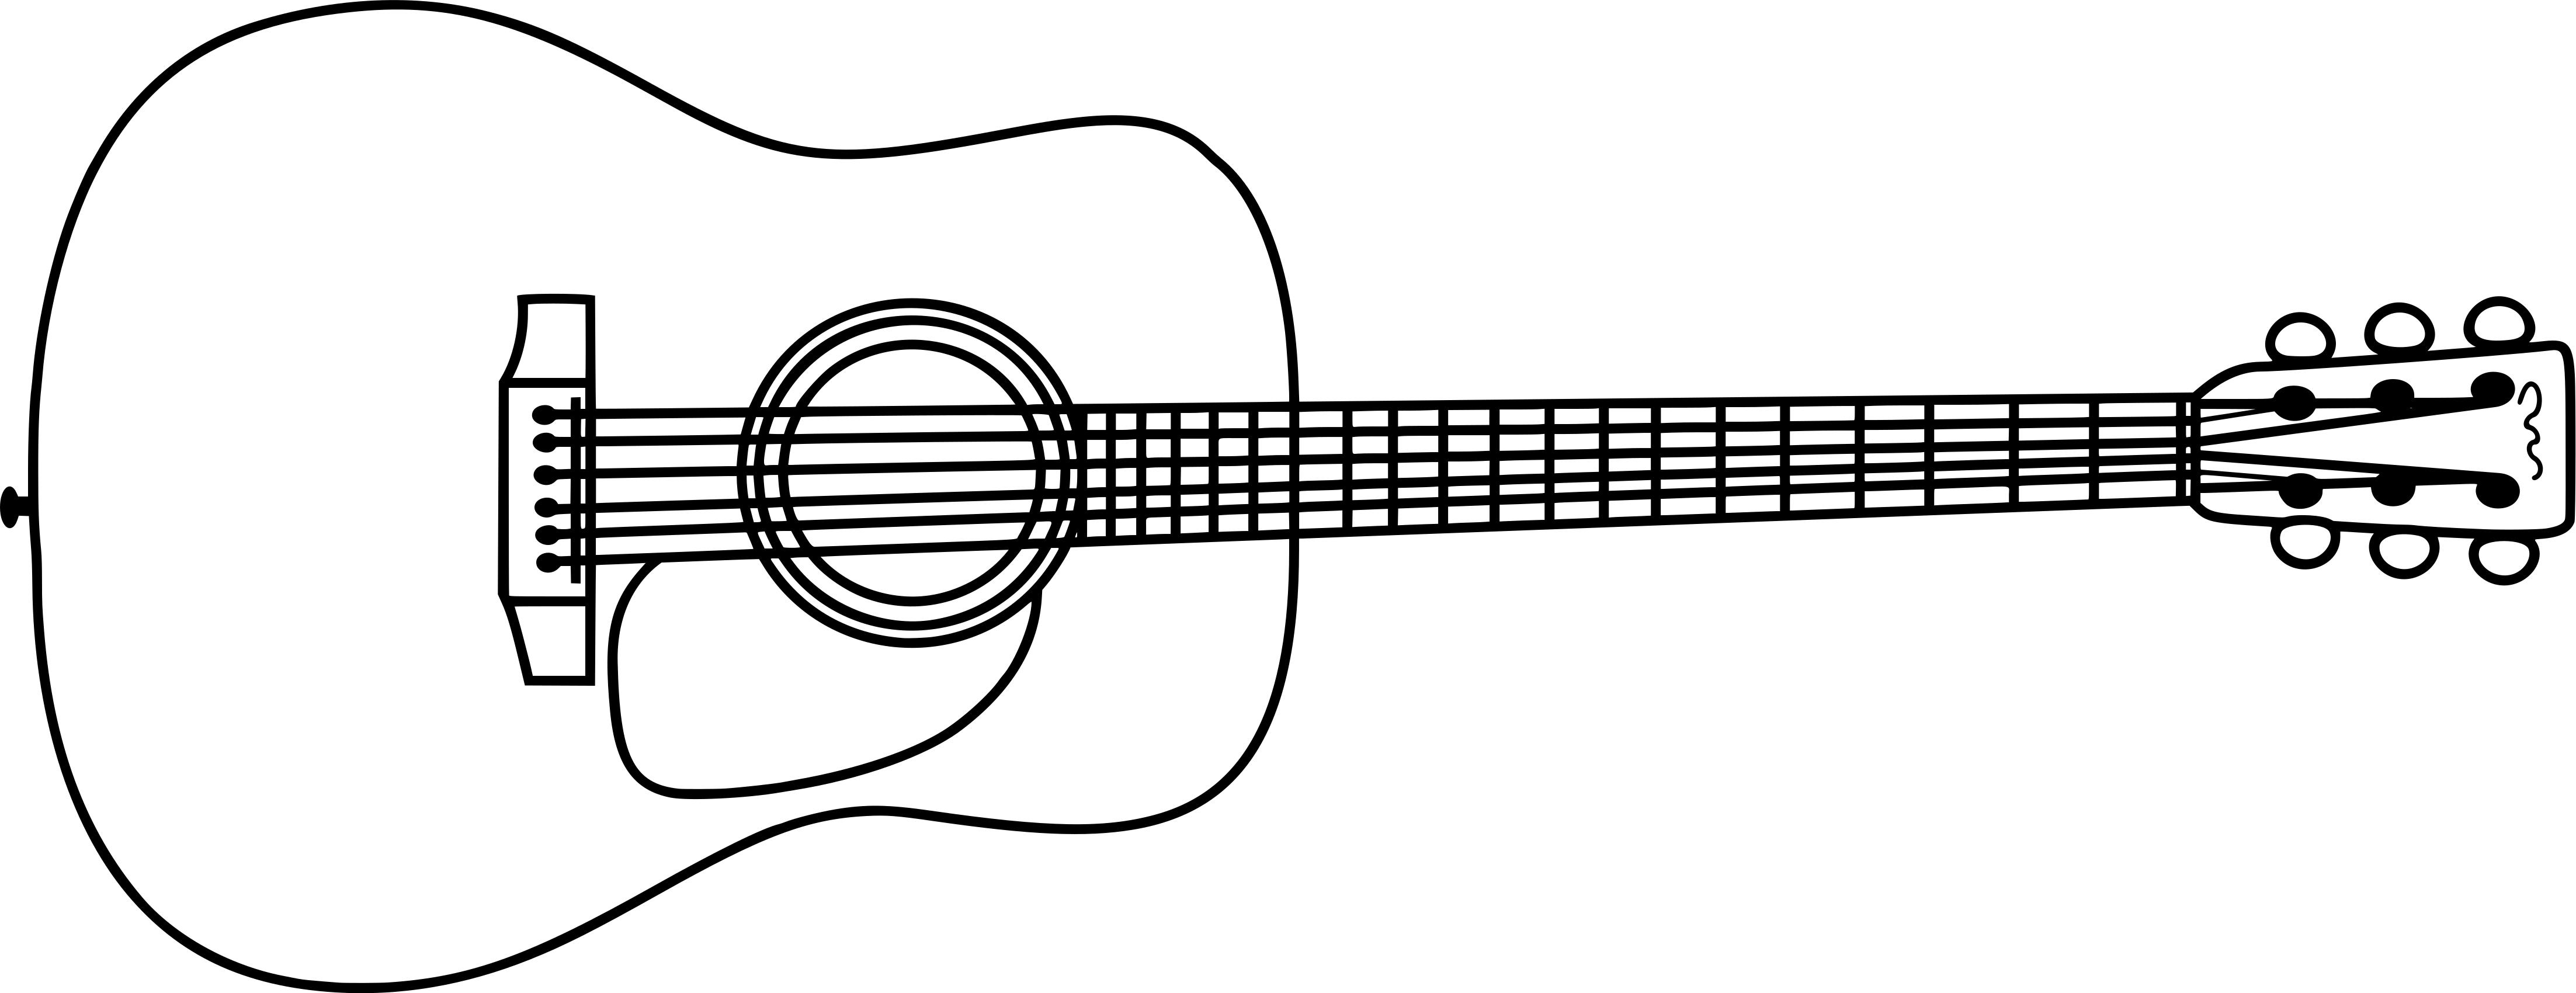 12 String Guitar Clipart 30 Free Cliparts